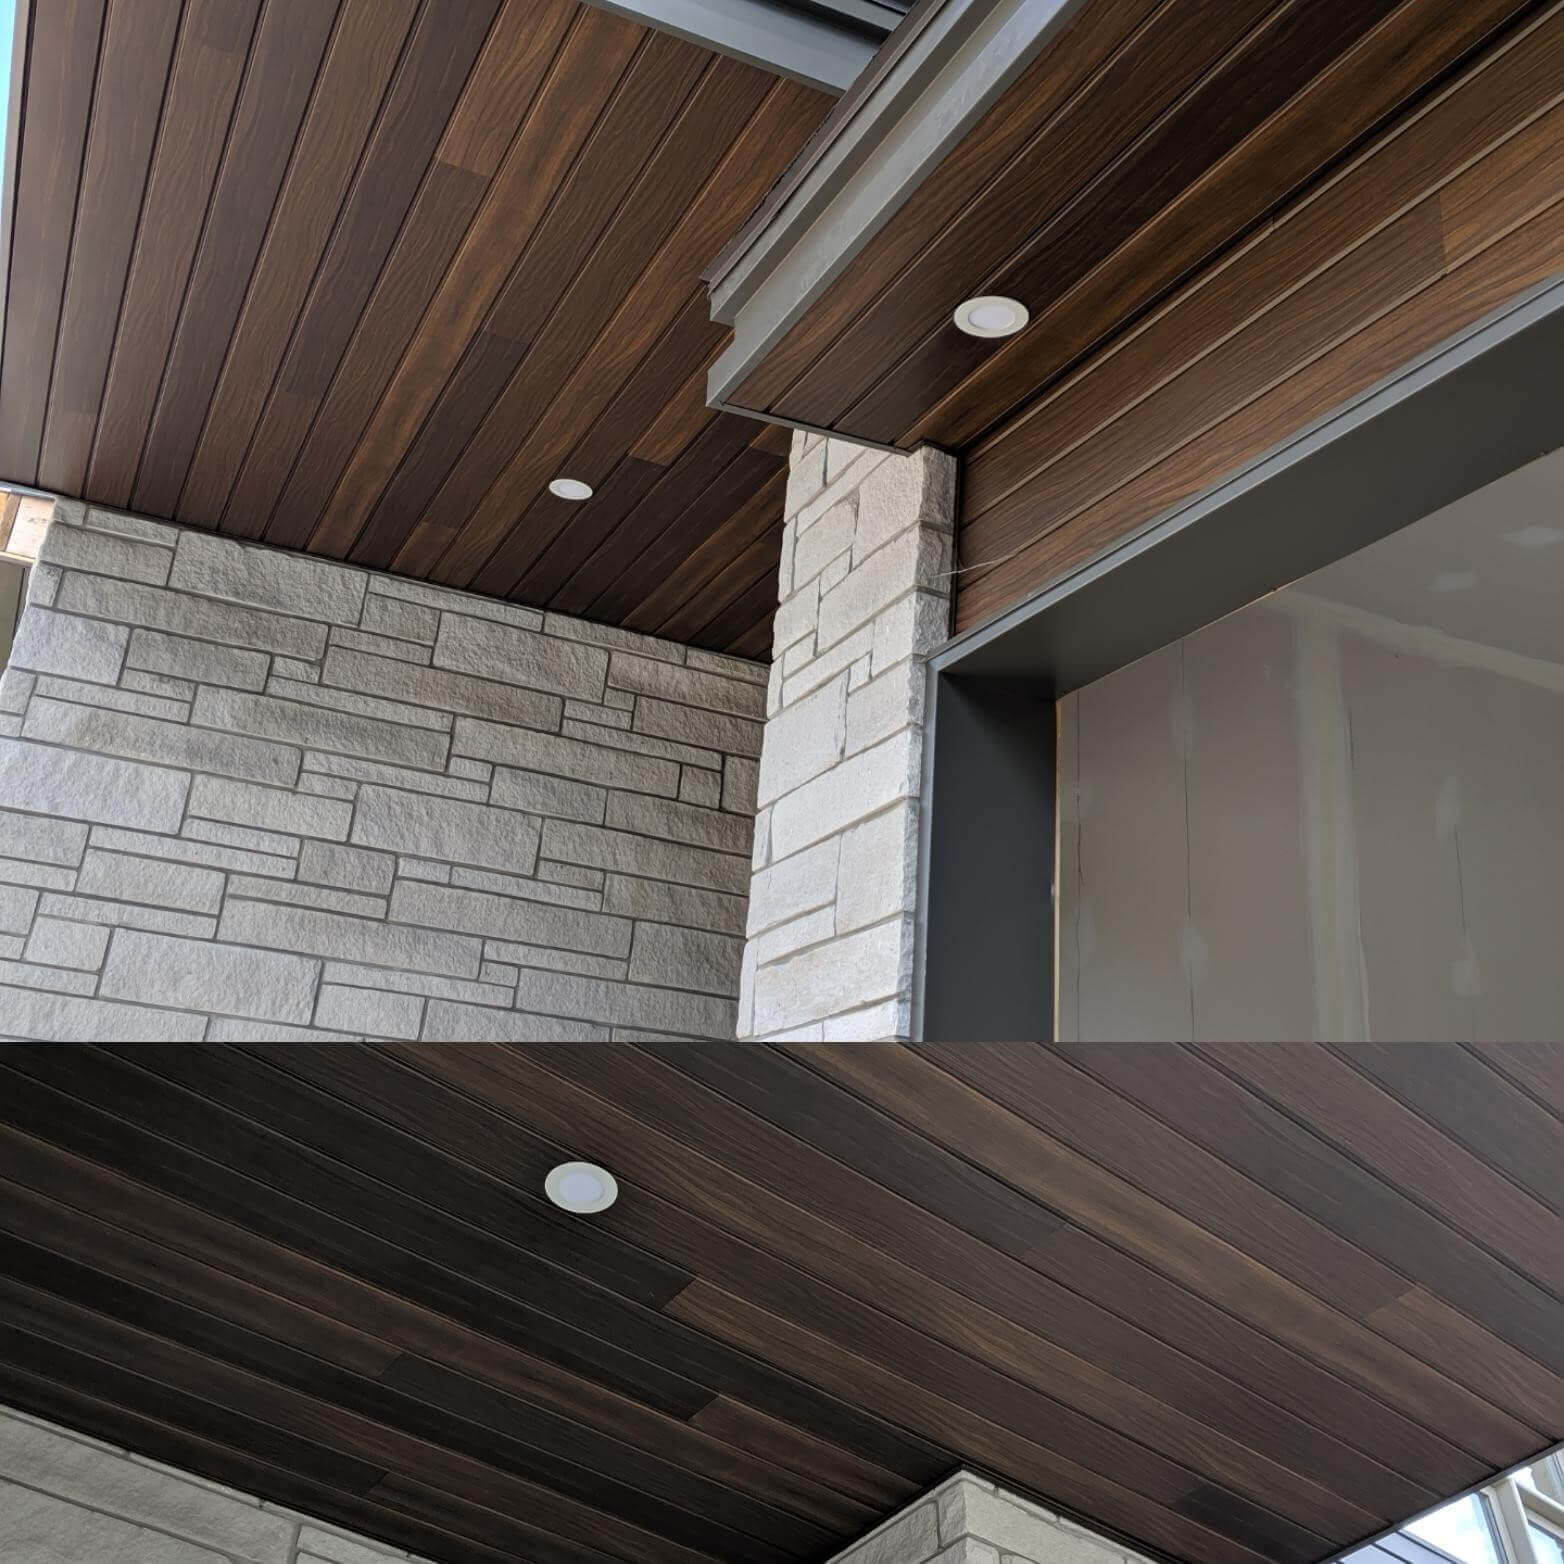 How Eavestrough Protect Your Home?